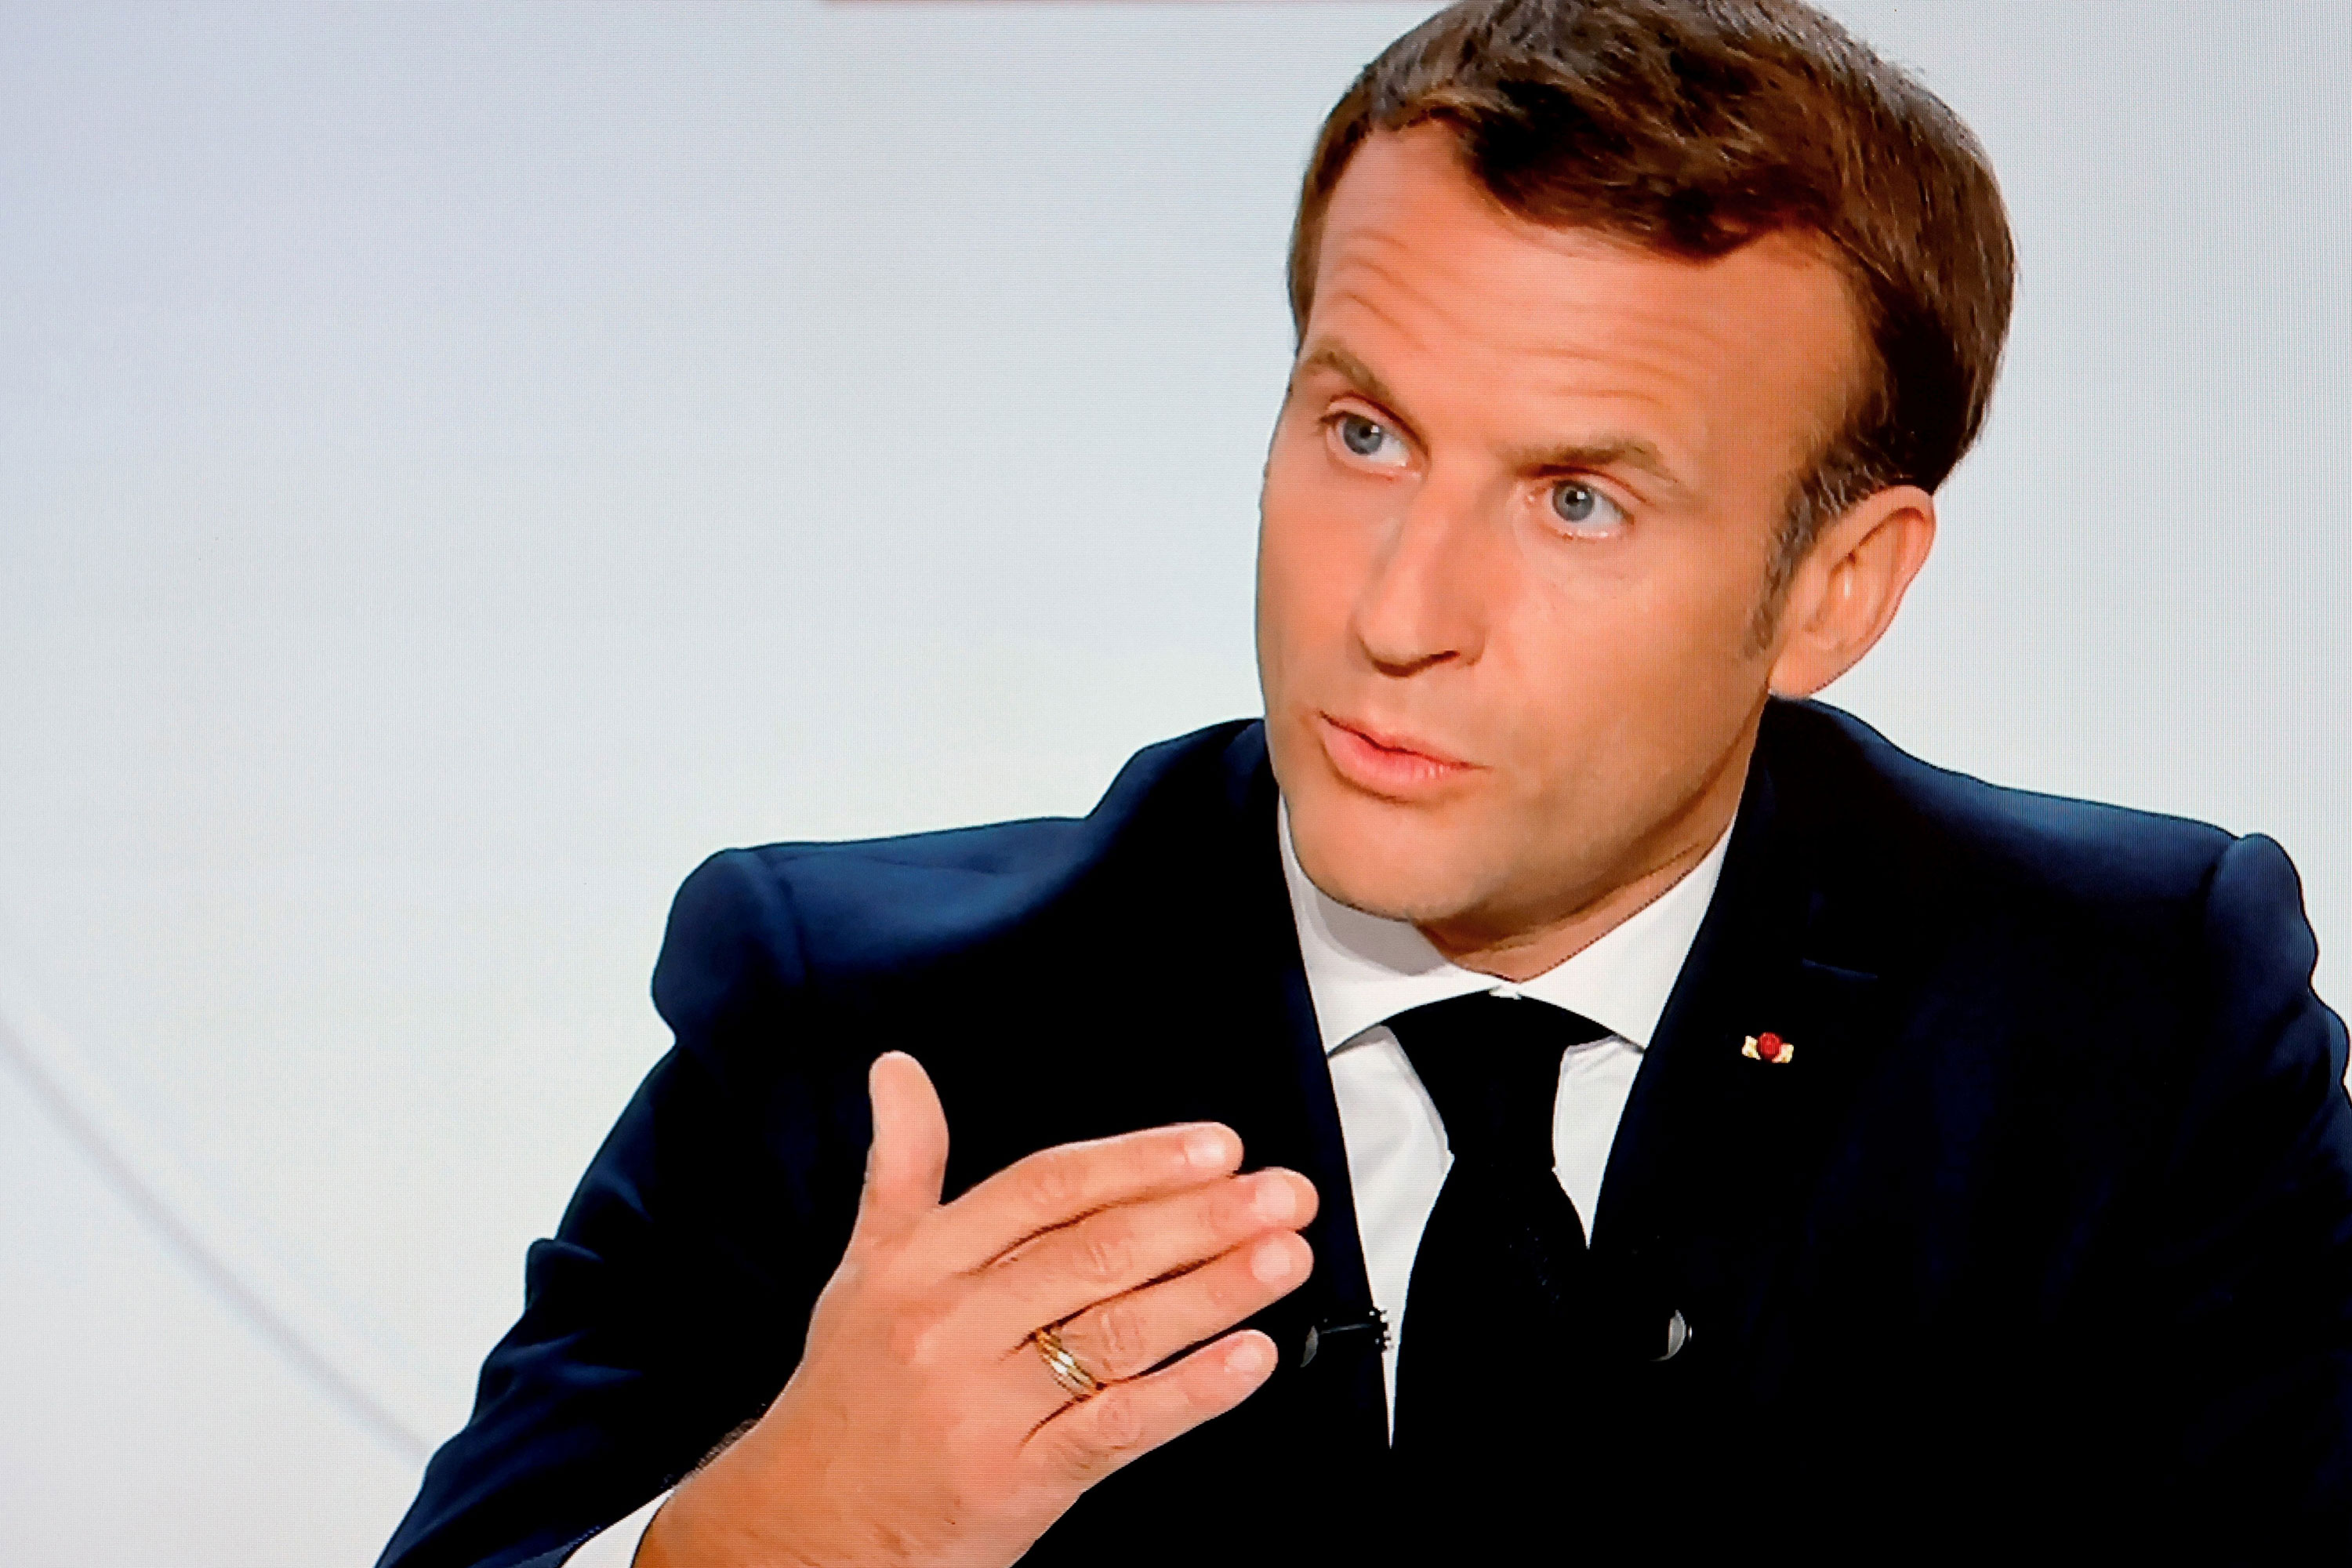 French President Emmanuel Macron addresses the nation during a televised interview from the Elysee Palace on October 14 in Paris.